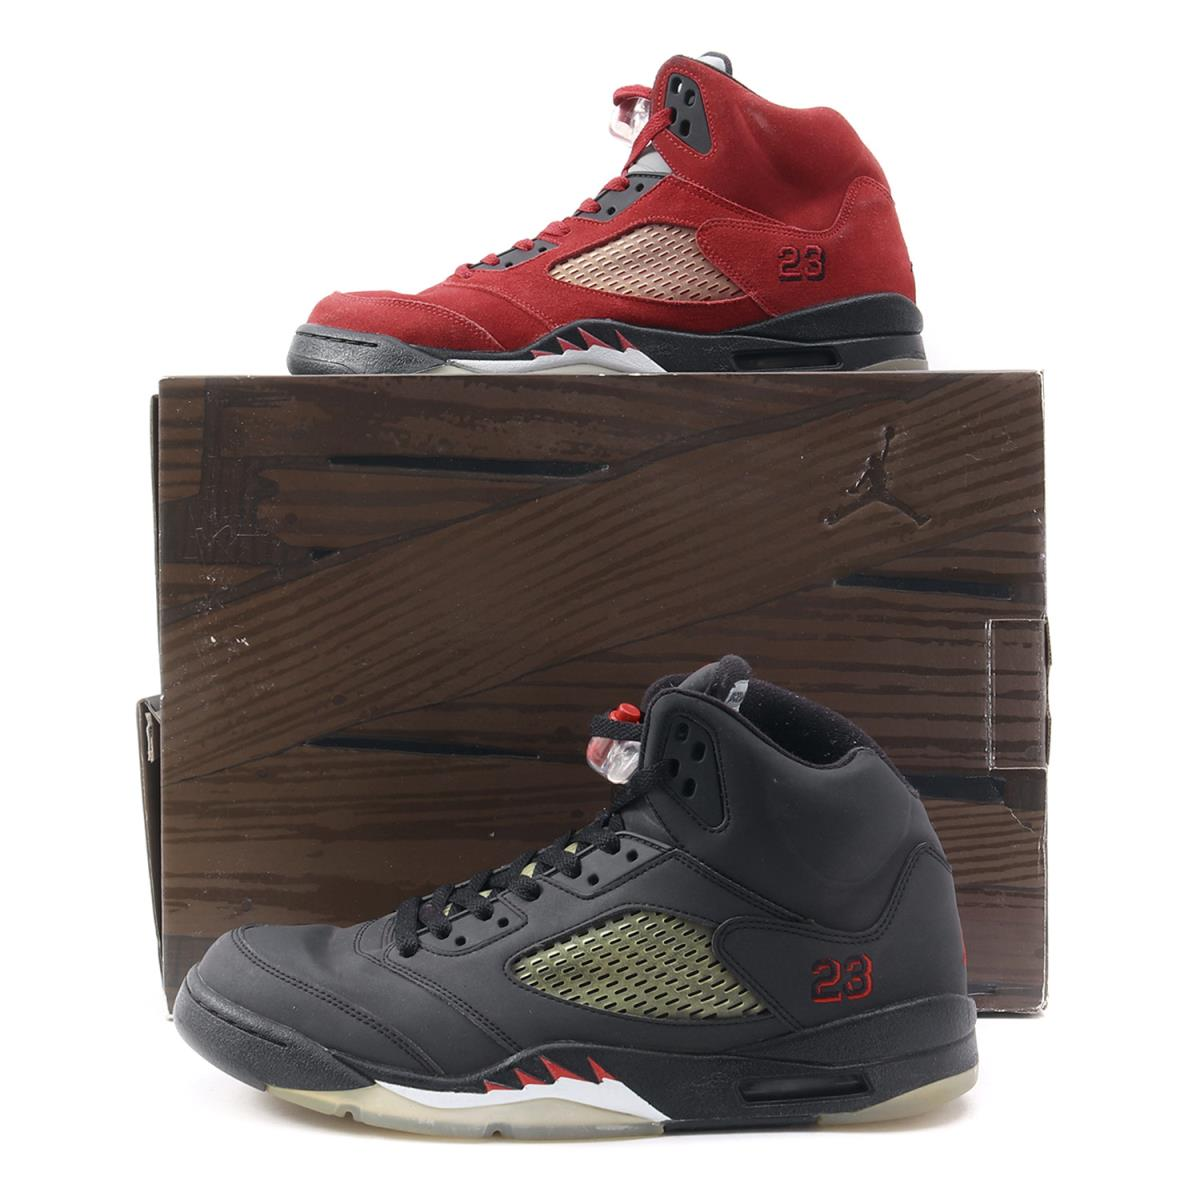 premium selection a7259 e1f52 NIKE (Nike) AIR JORDAN 5 RETRO DMP RAGING BULL (360,968-991) red   black  US10.5(28.5cm)